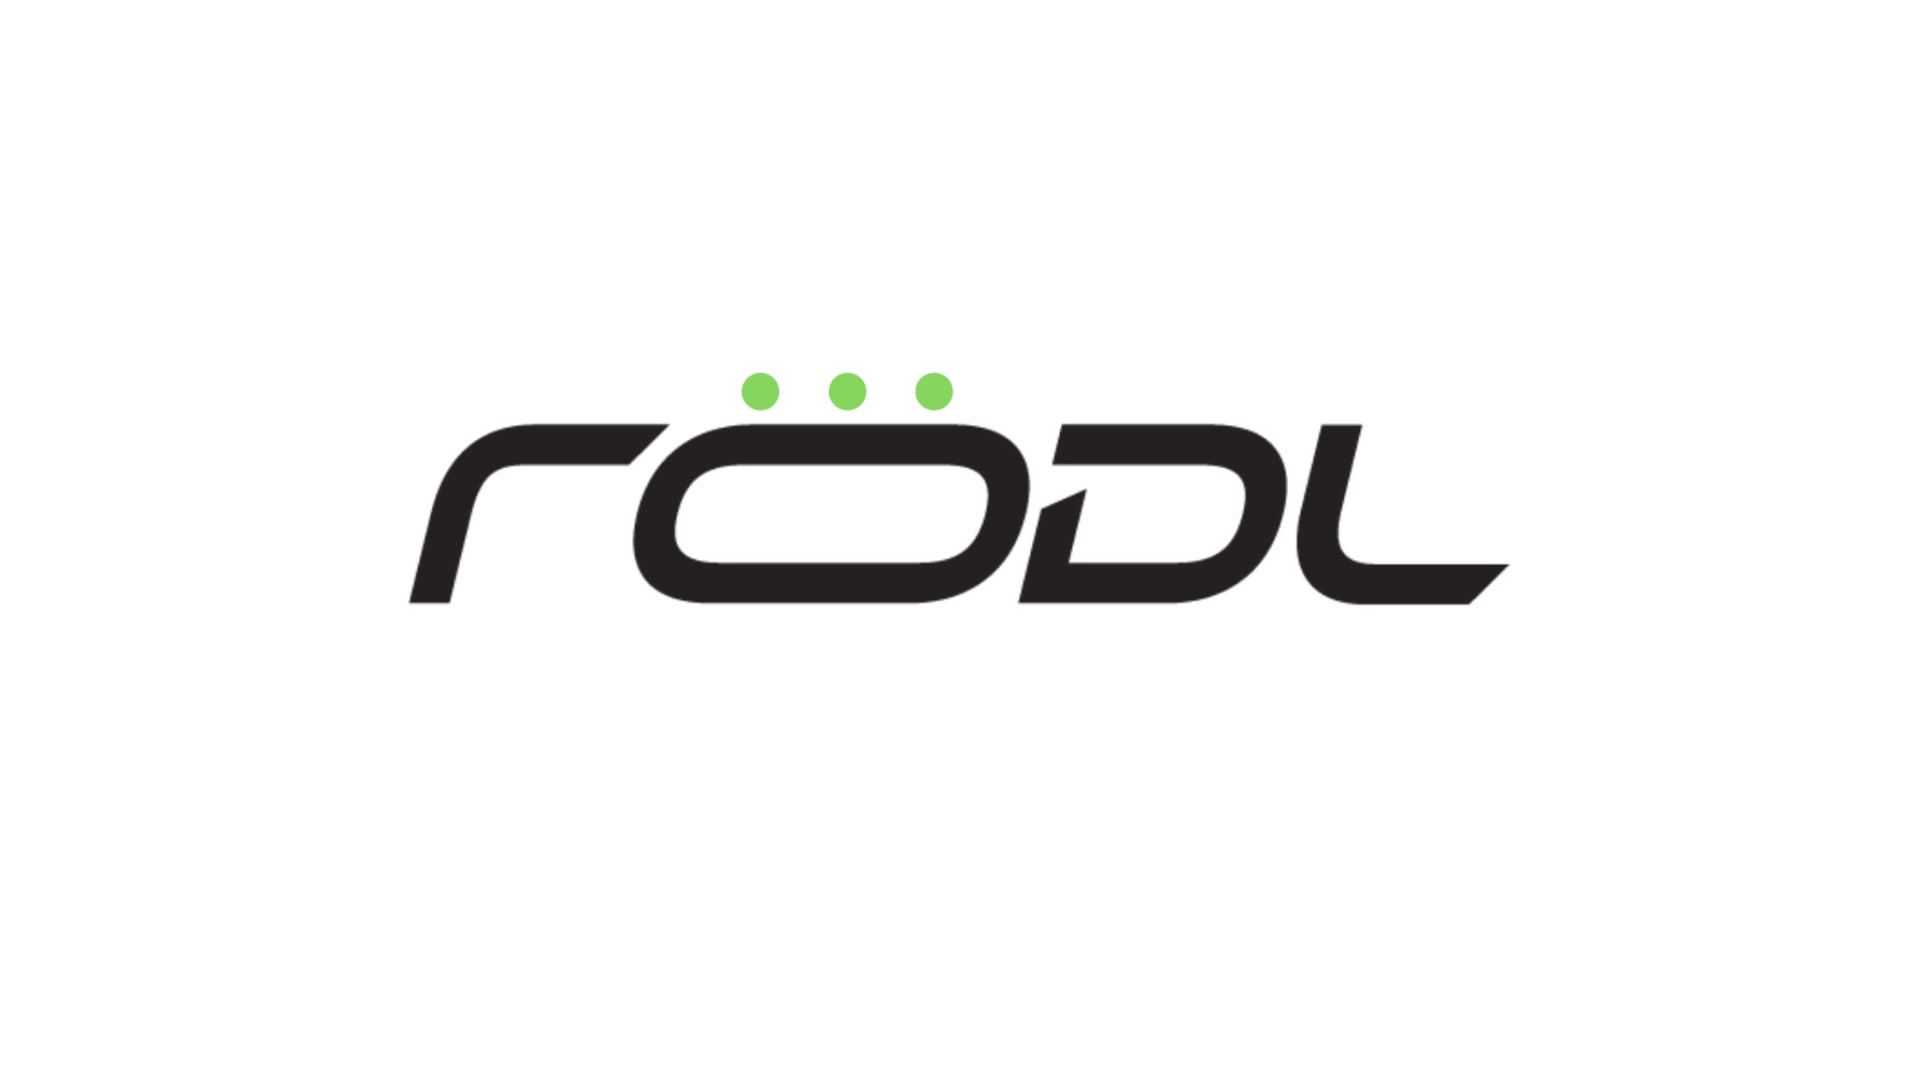 RODL Motion Graphic Zoom.mp4